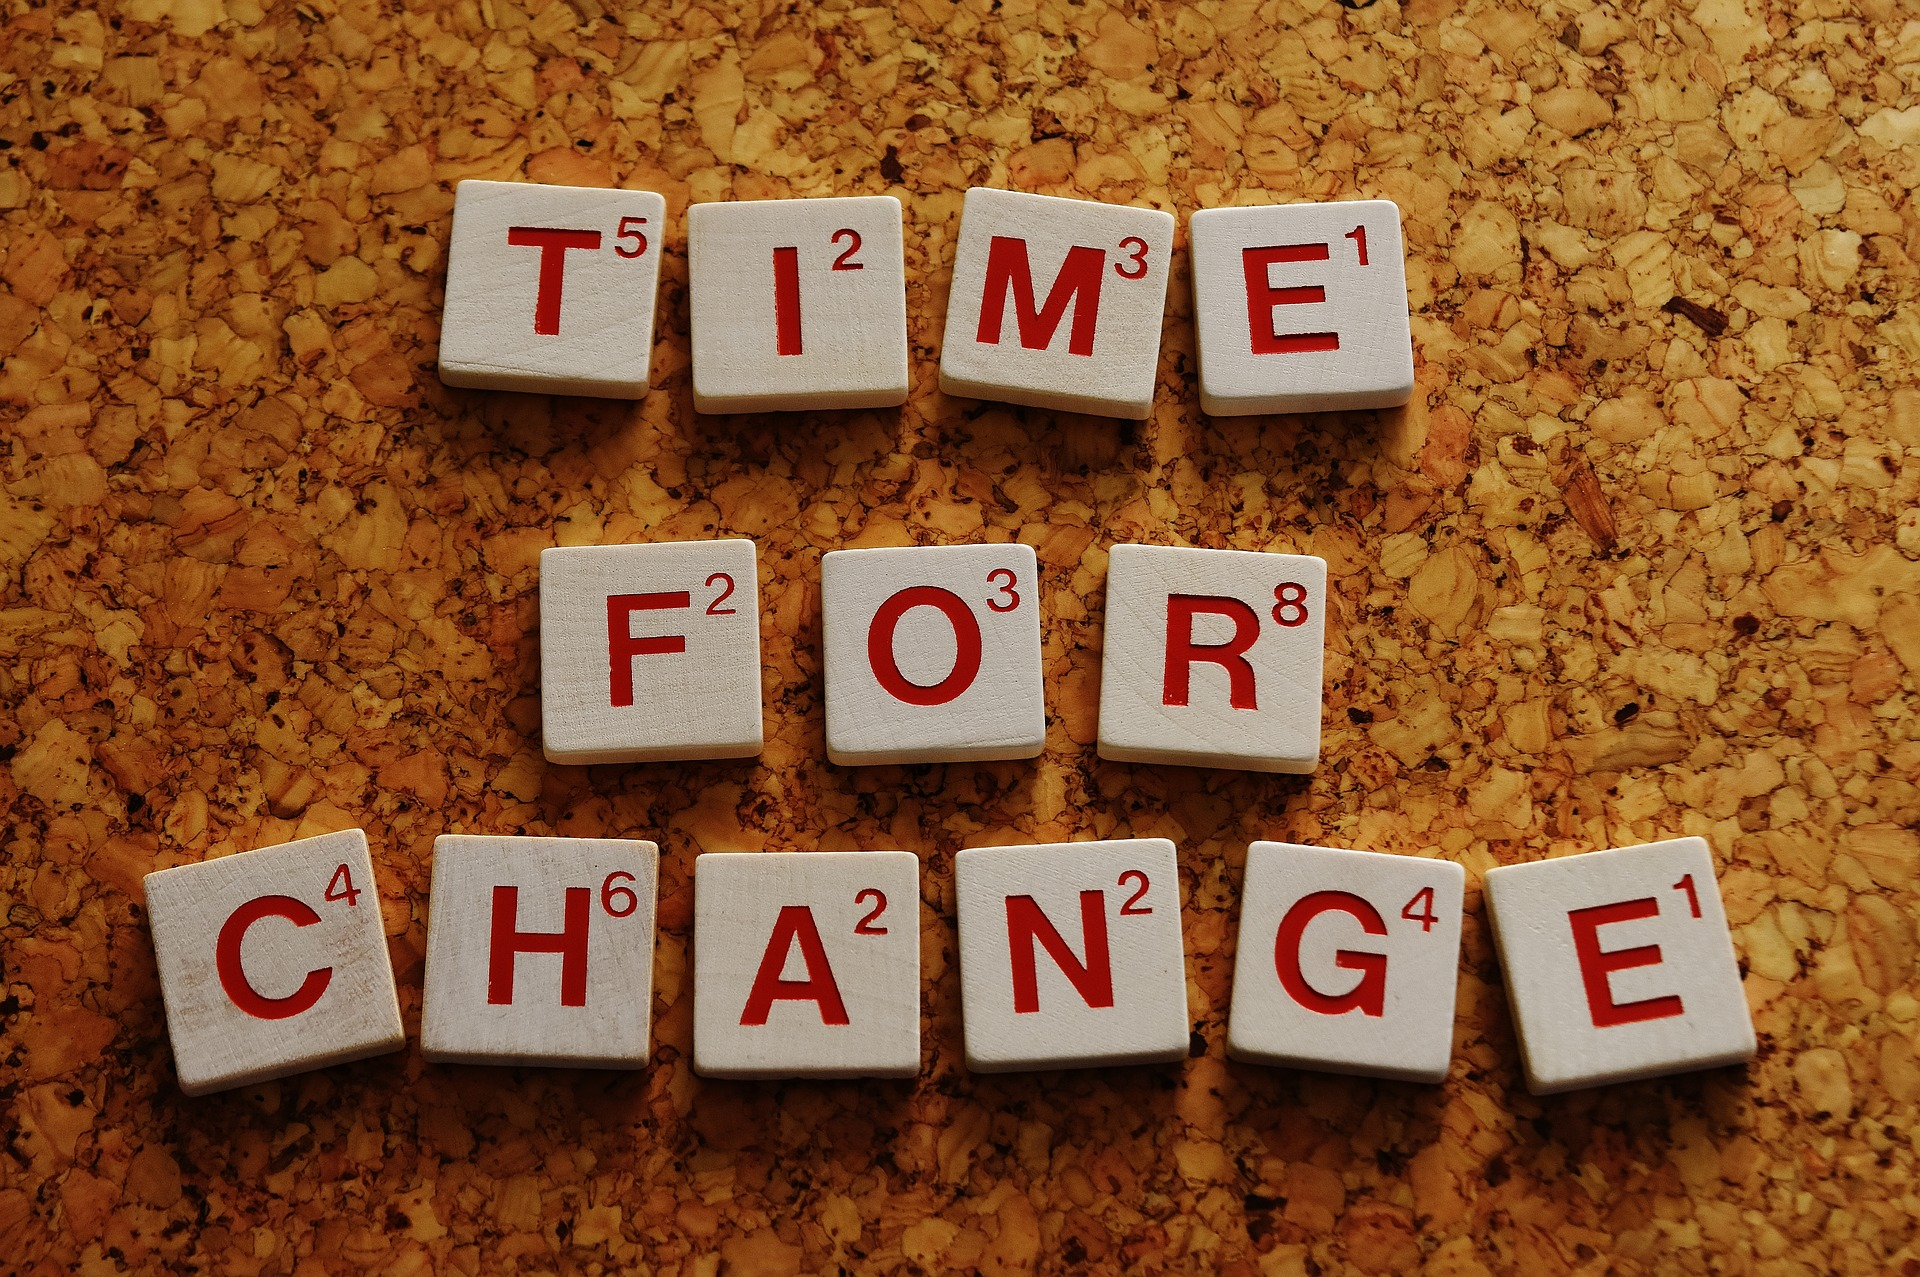 Scrabble letters spelling 'Time for Change'. Photo by Alexas Fotos on Pixabay